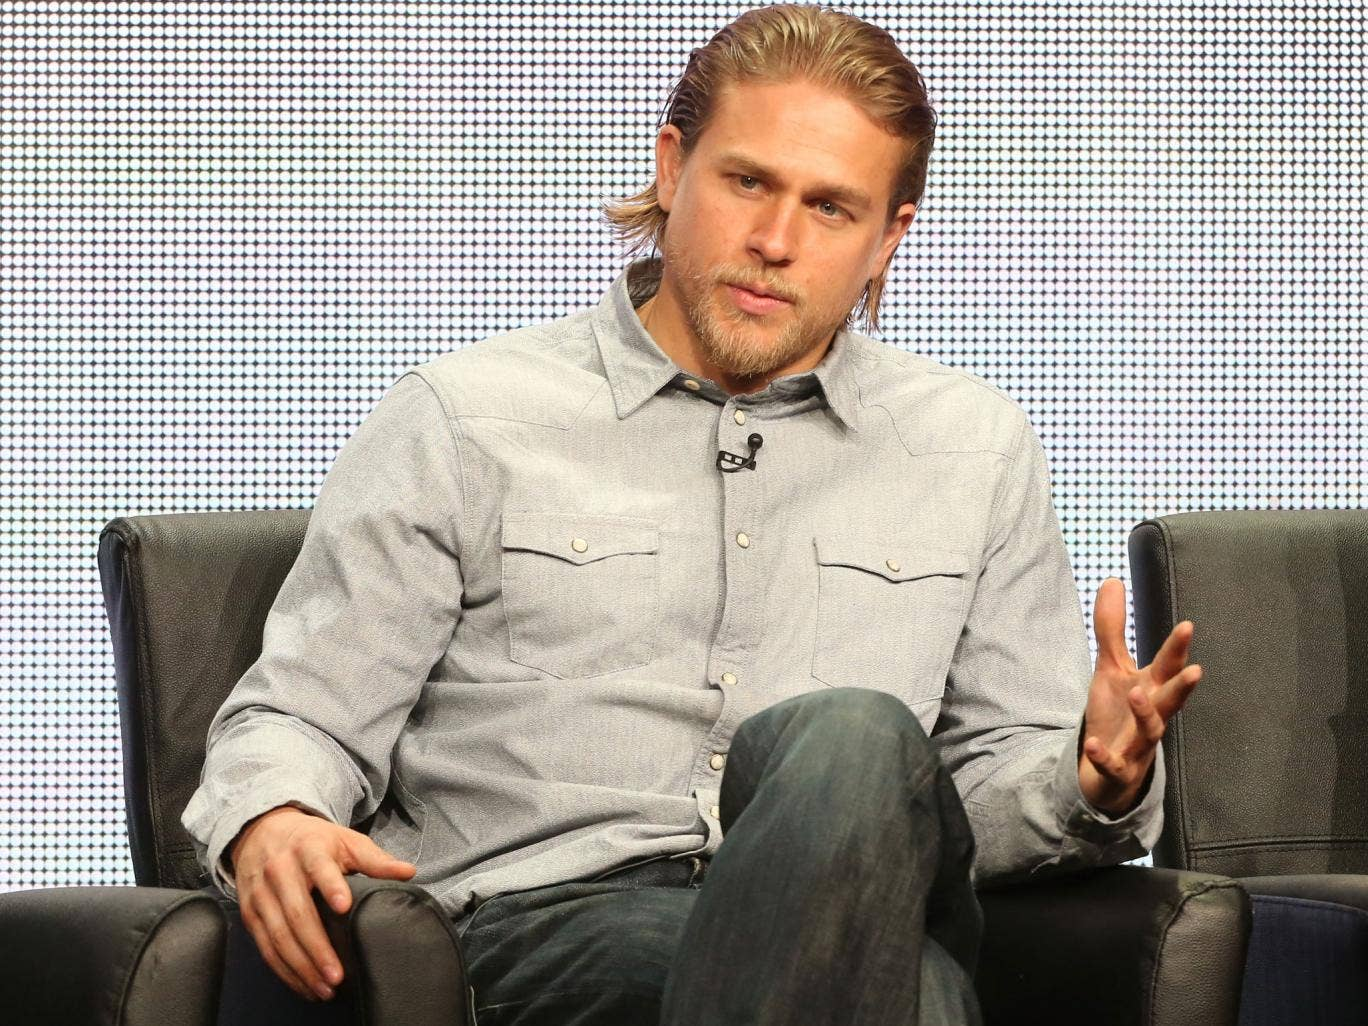 Charlie Hunnam has left Fifty Shades of Grey